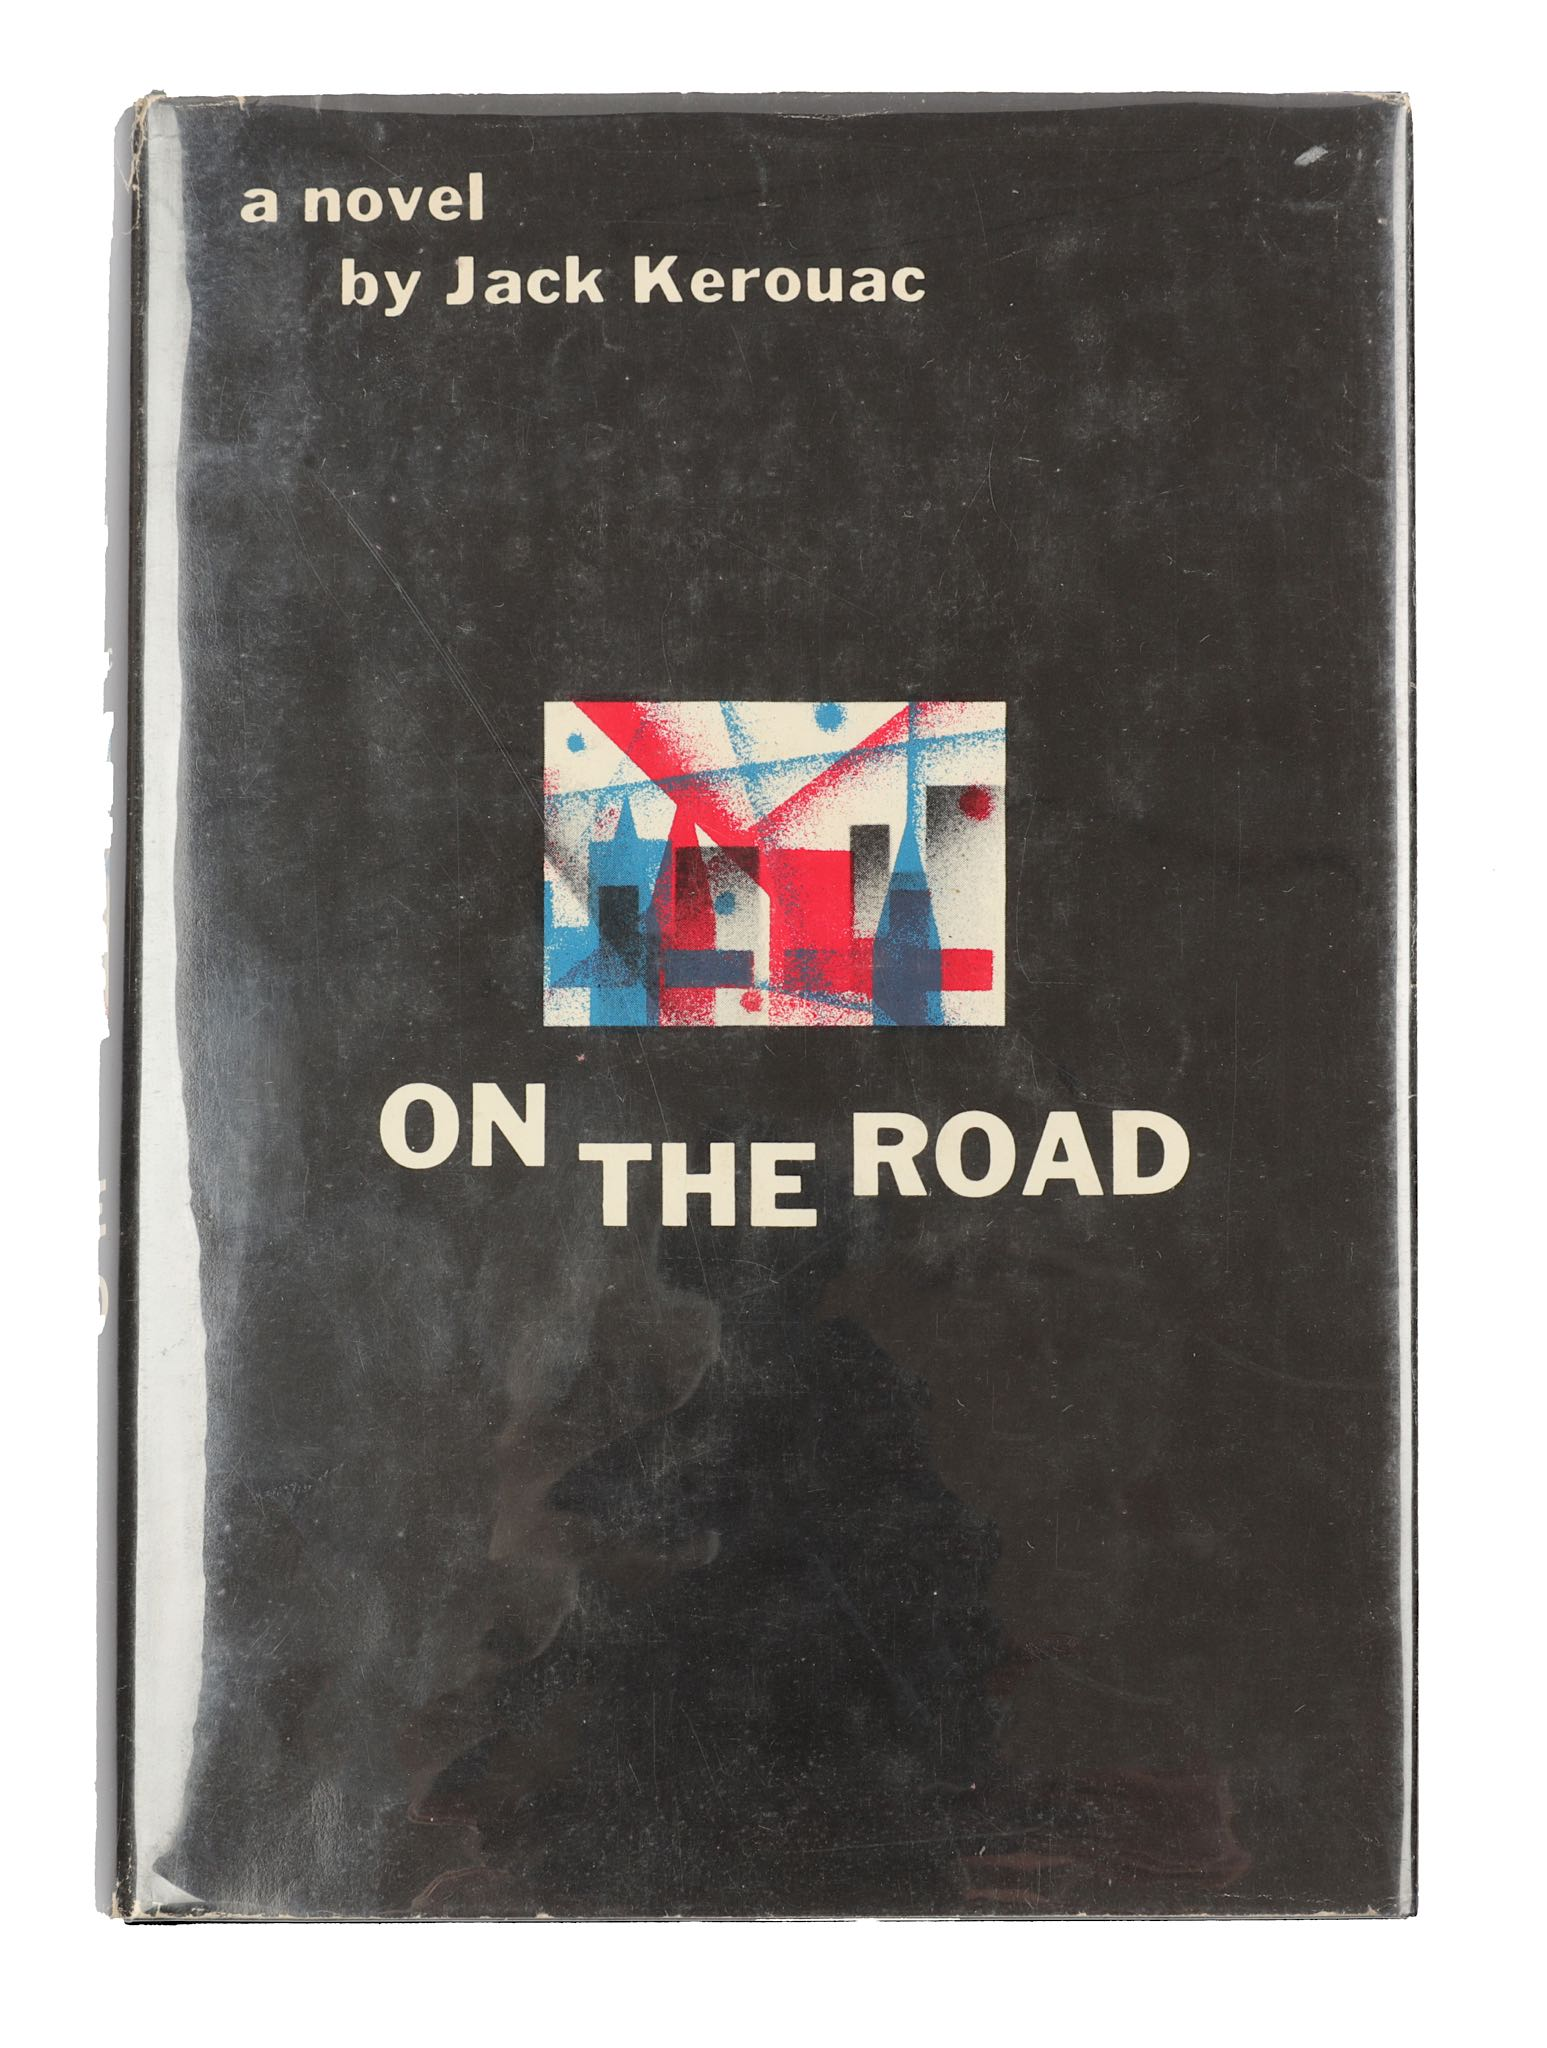 Lot 57 - Kerouac (Jack) On the Road, FIRST EDITION, bookplate, original black cloth, white lettering, top